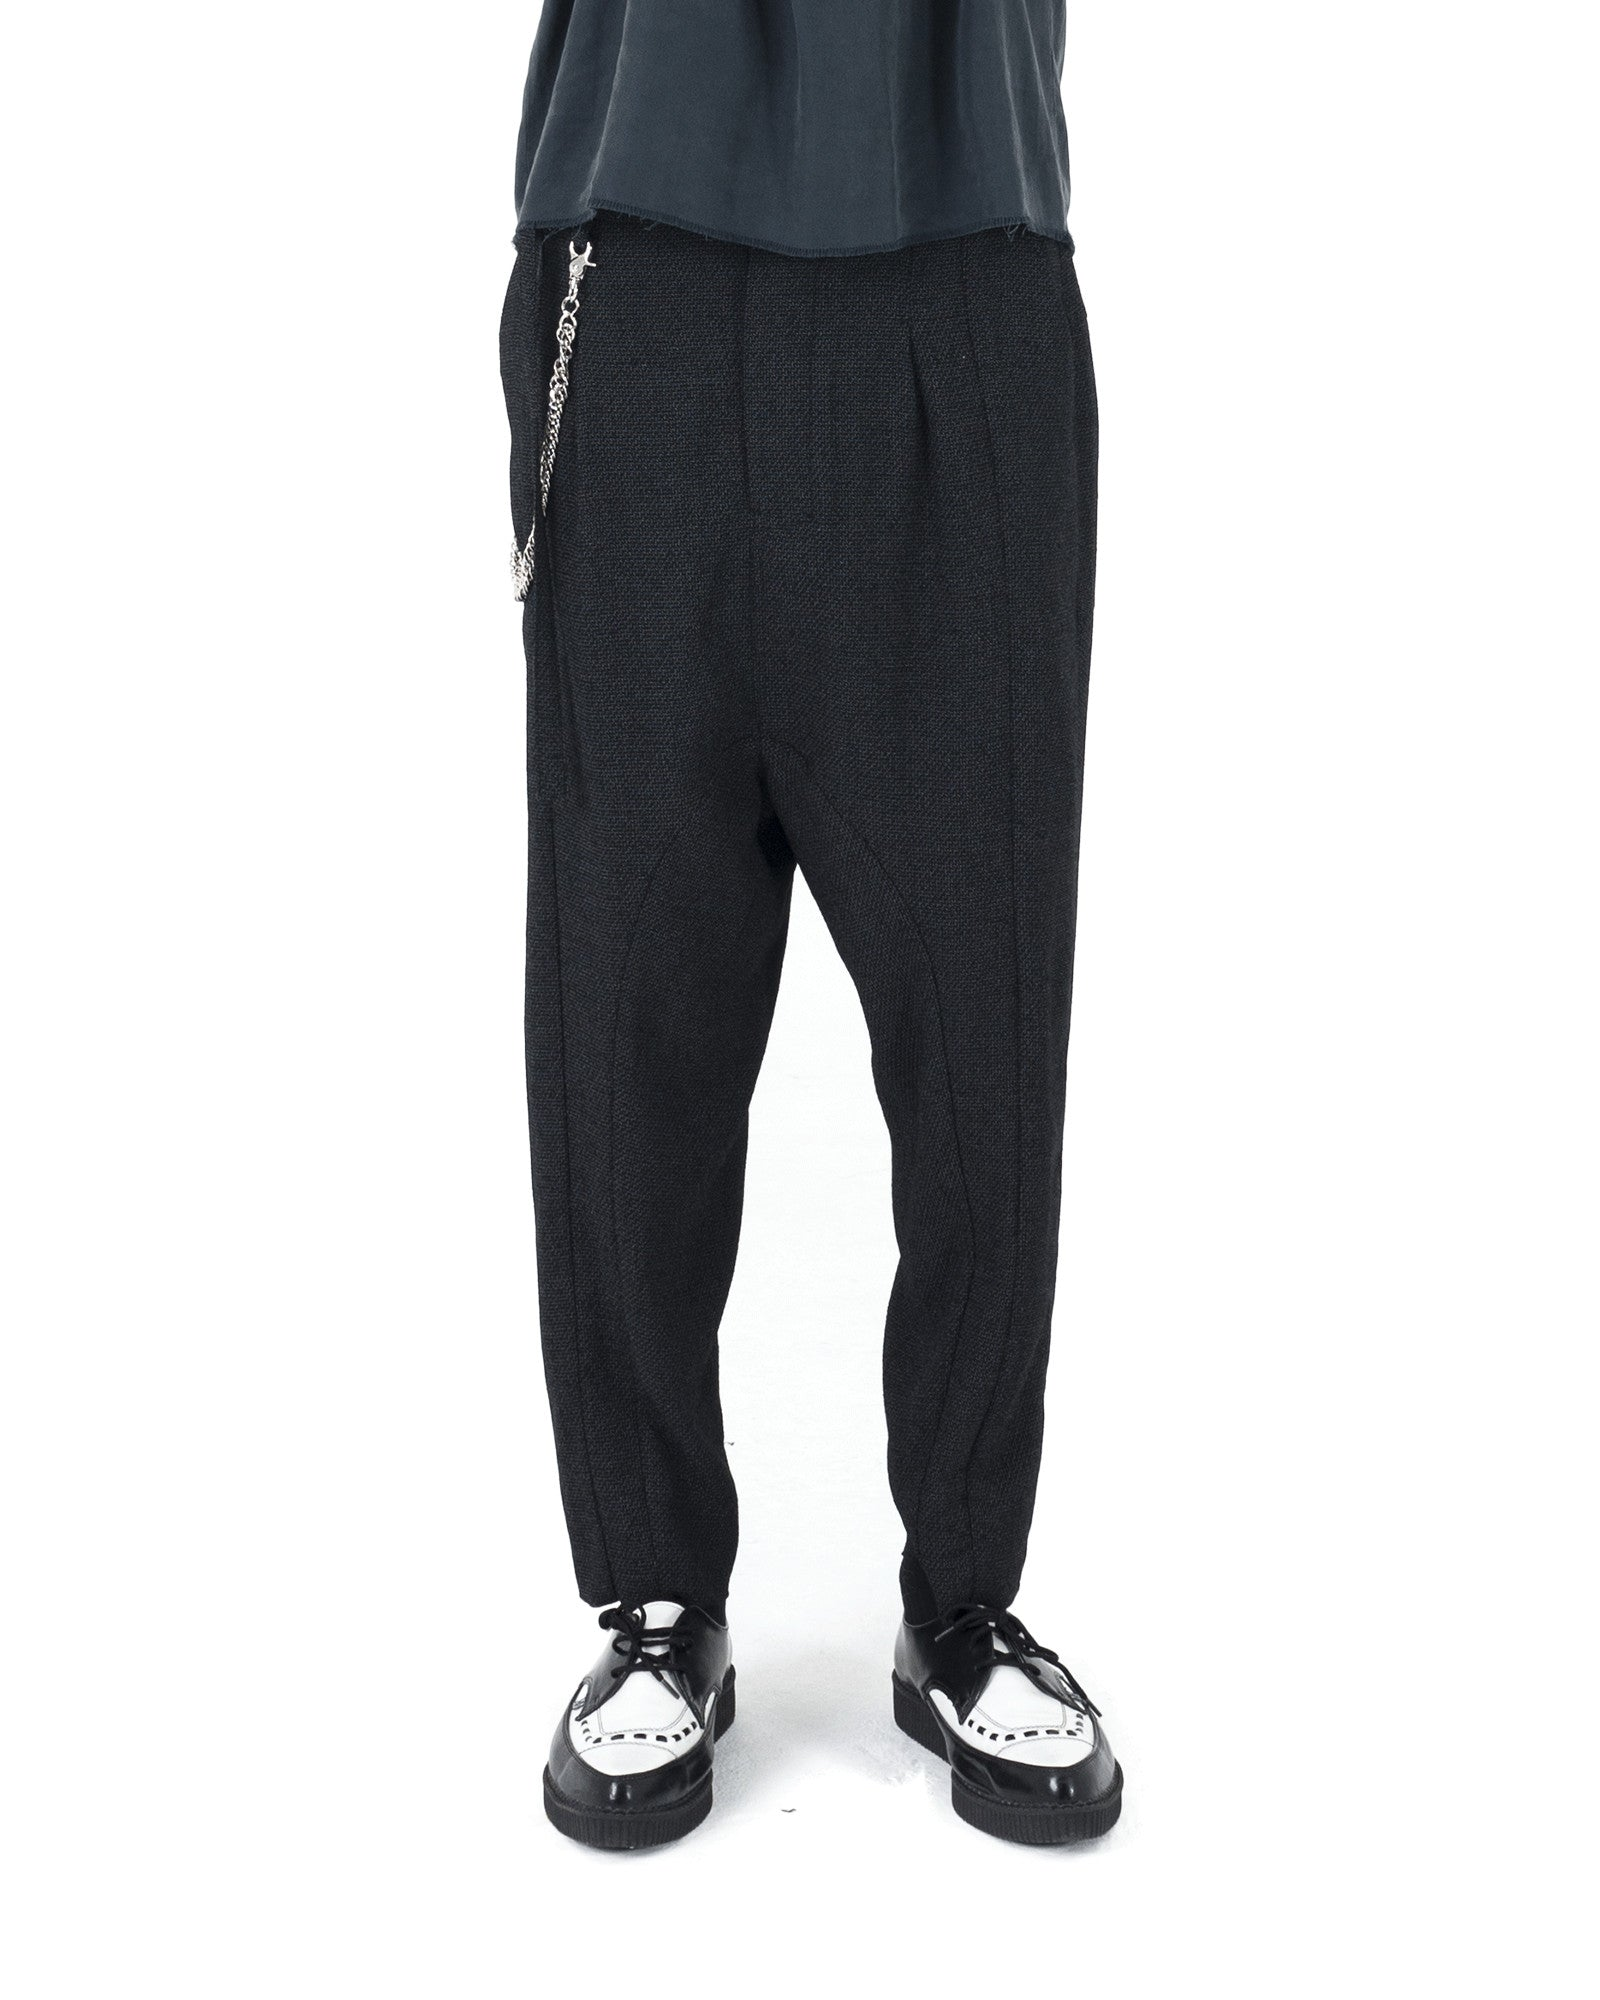 Claus Trouser - Black Speck